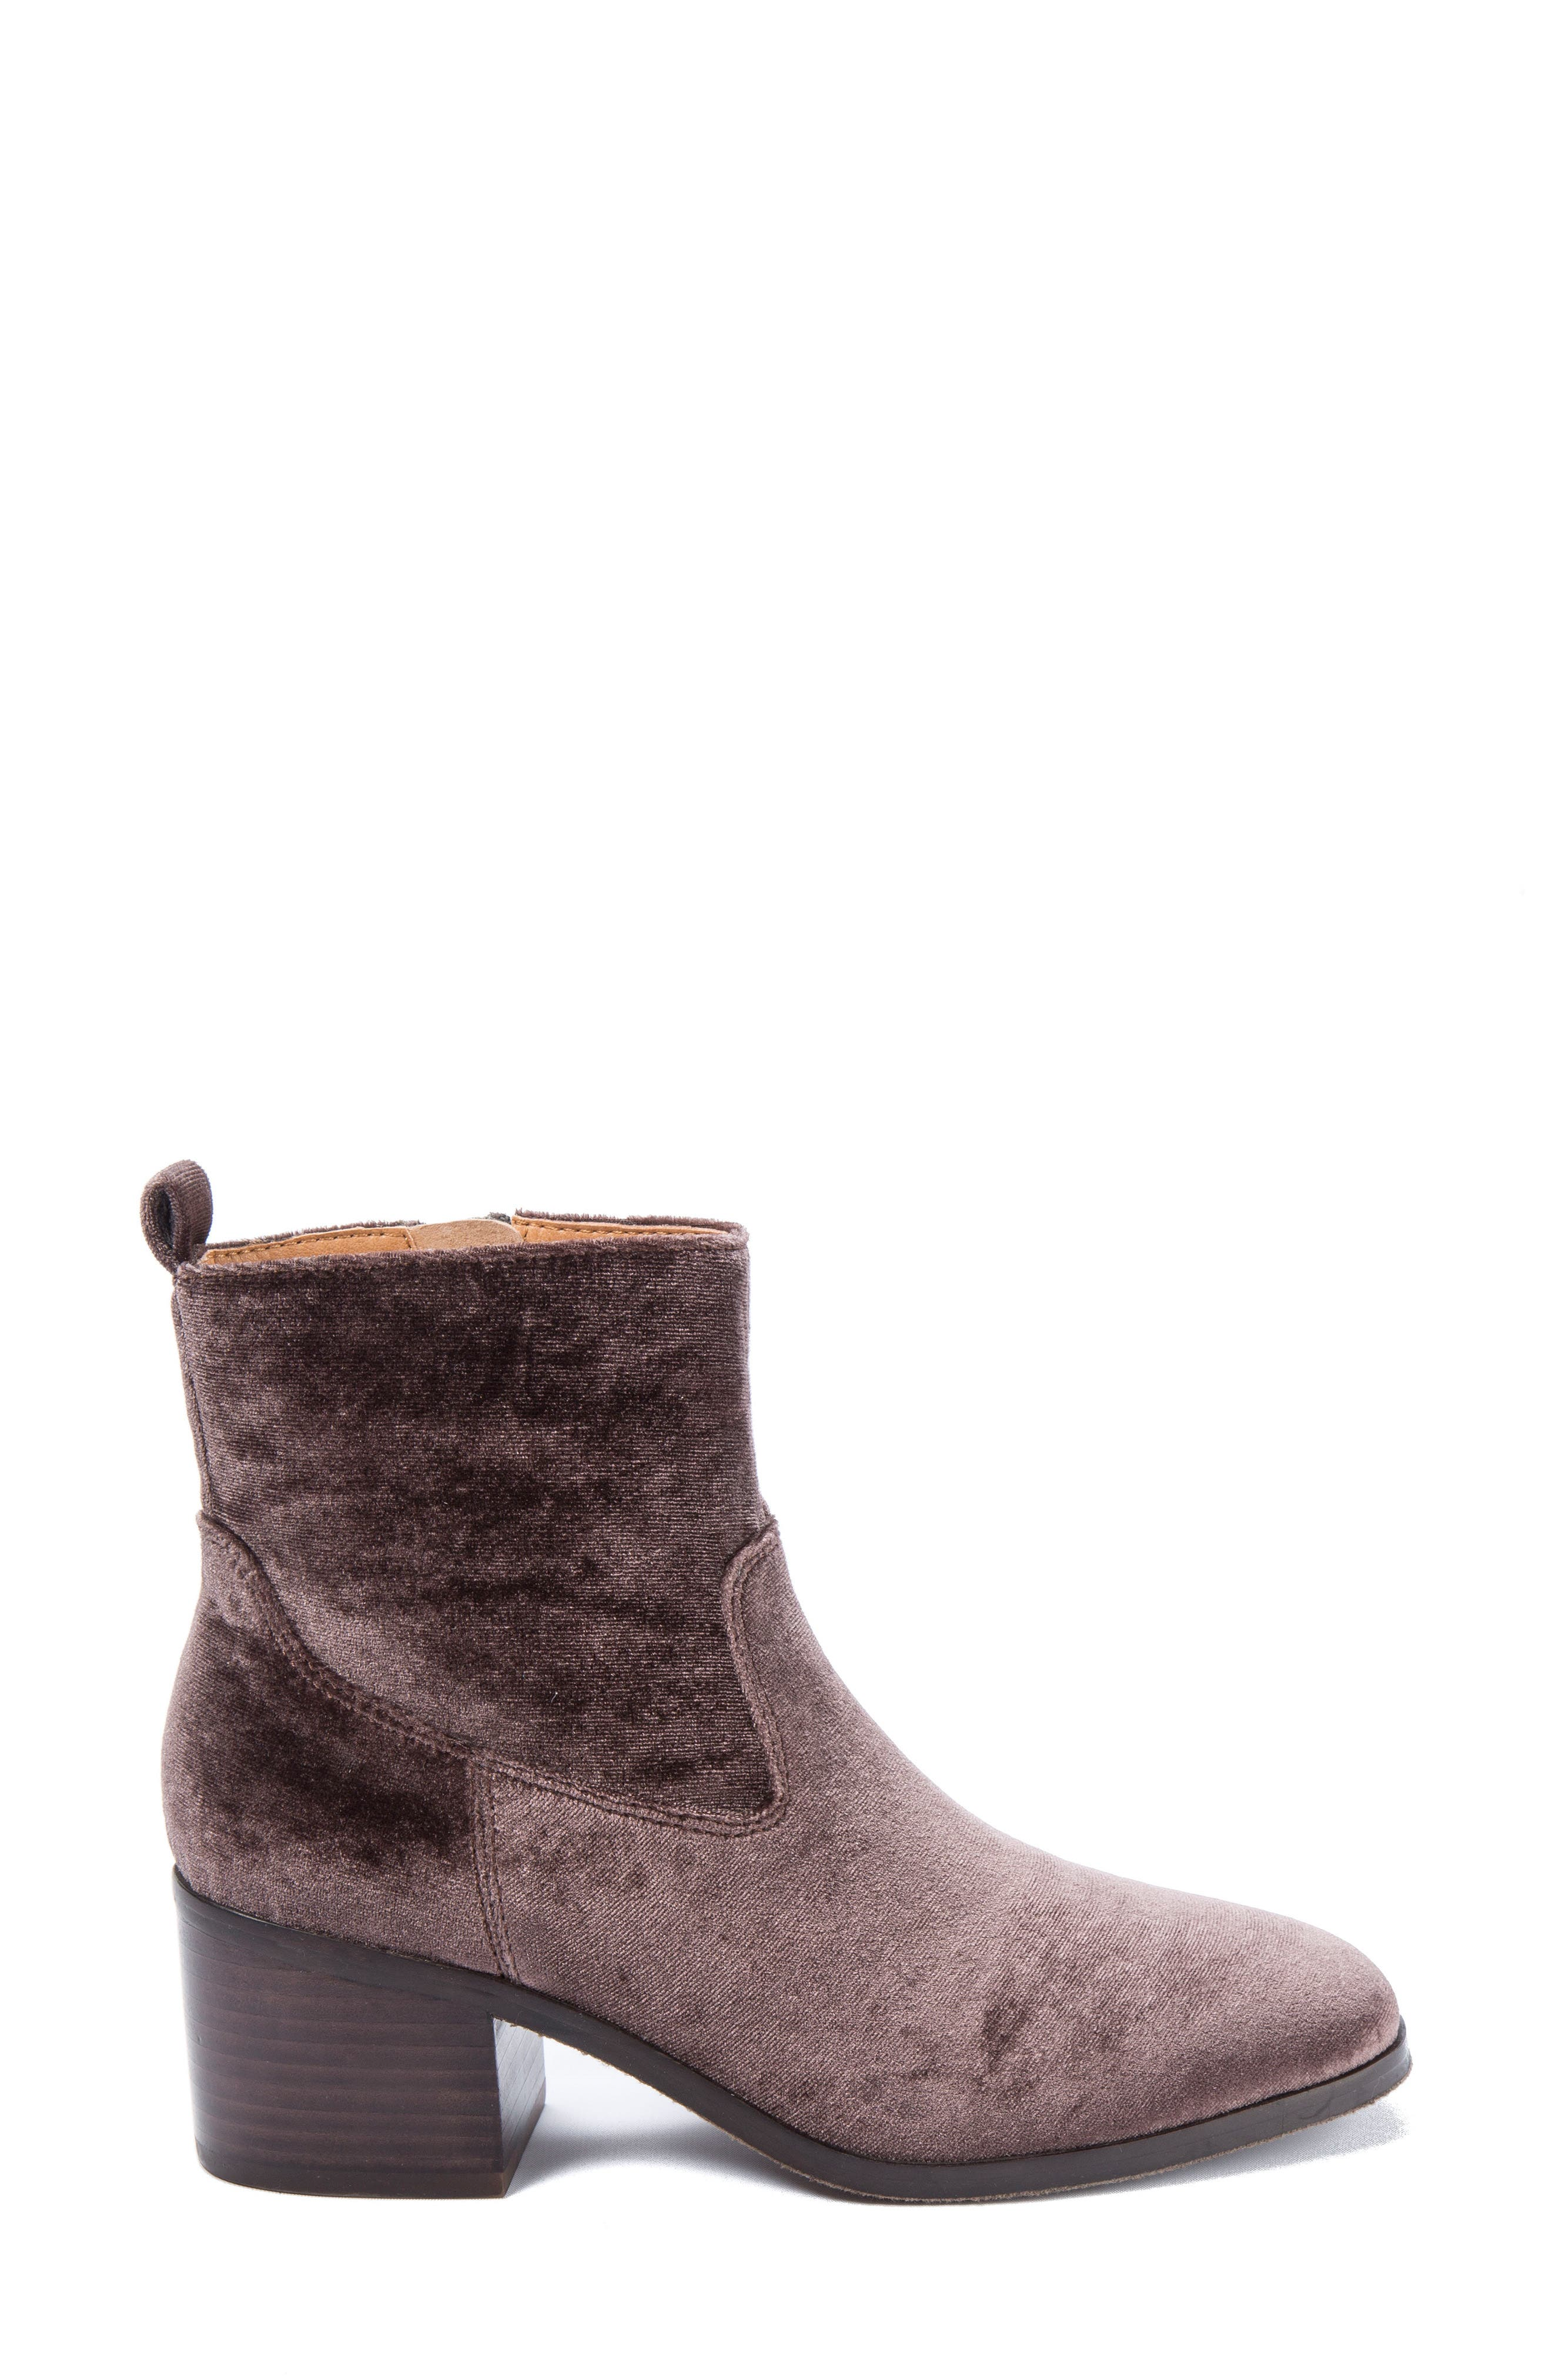 Dosay Bootie,                             Alternate thumbnail 3, color,